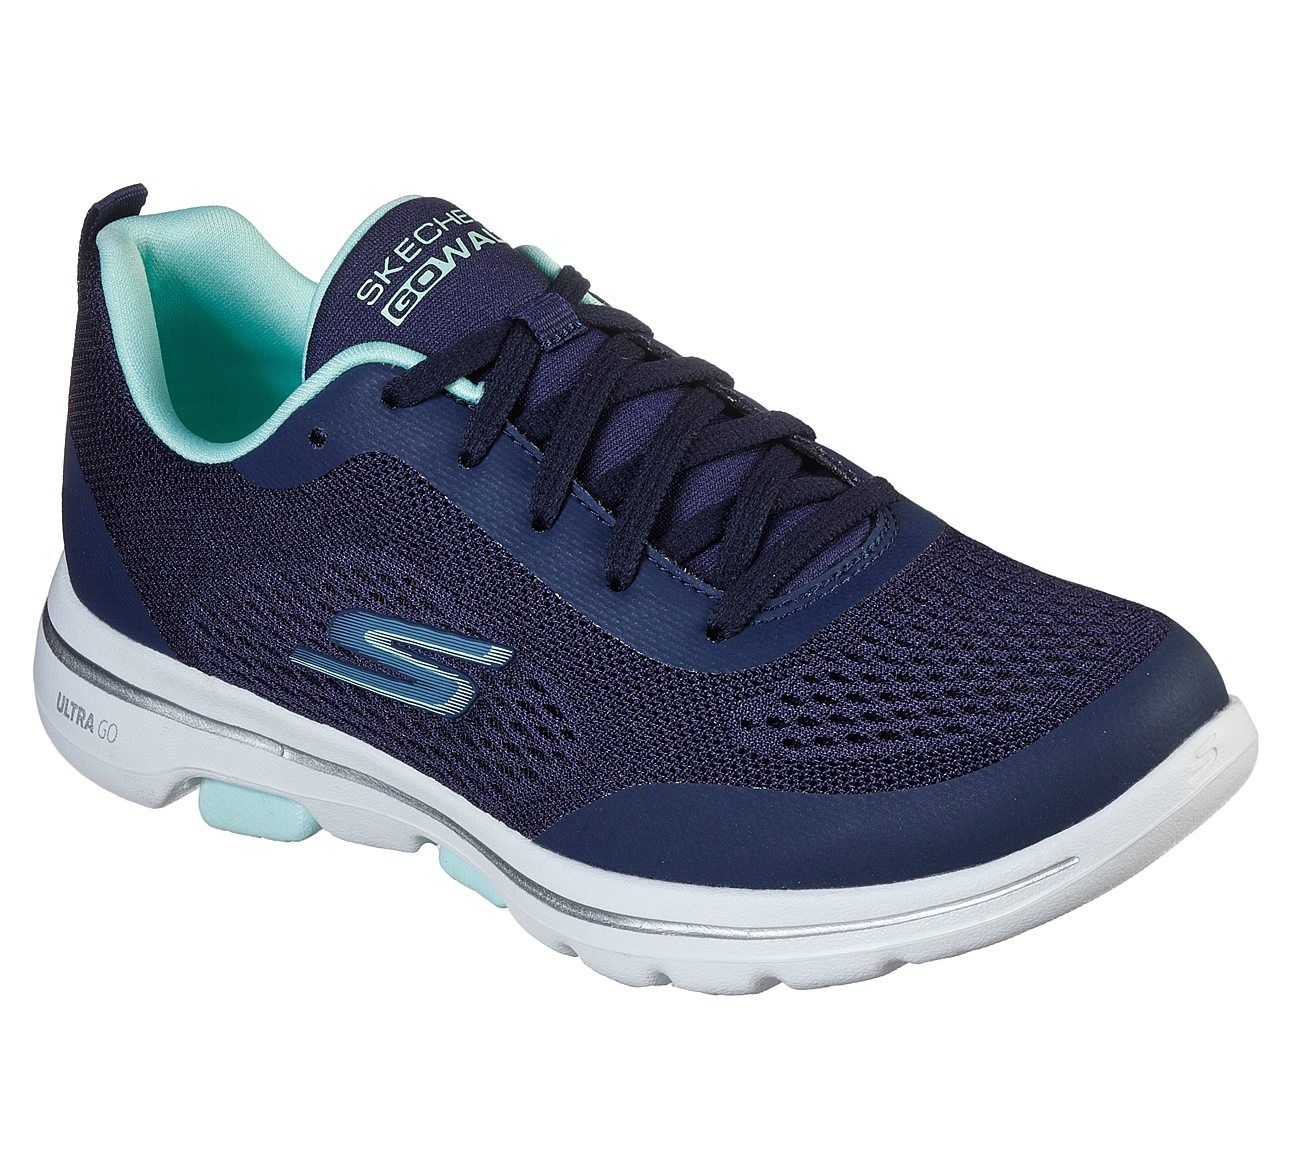 Gowalk 5 Exquisite Shoe Technology Skechers Skechers Performance